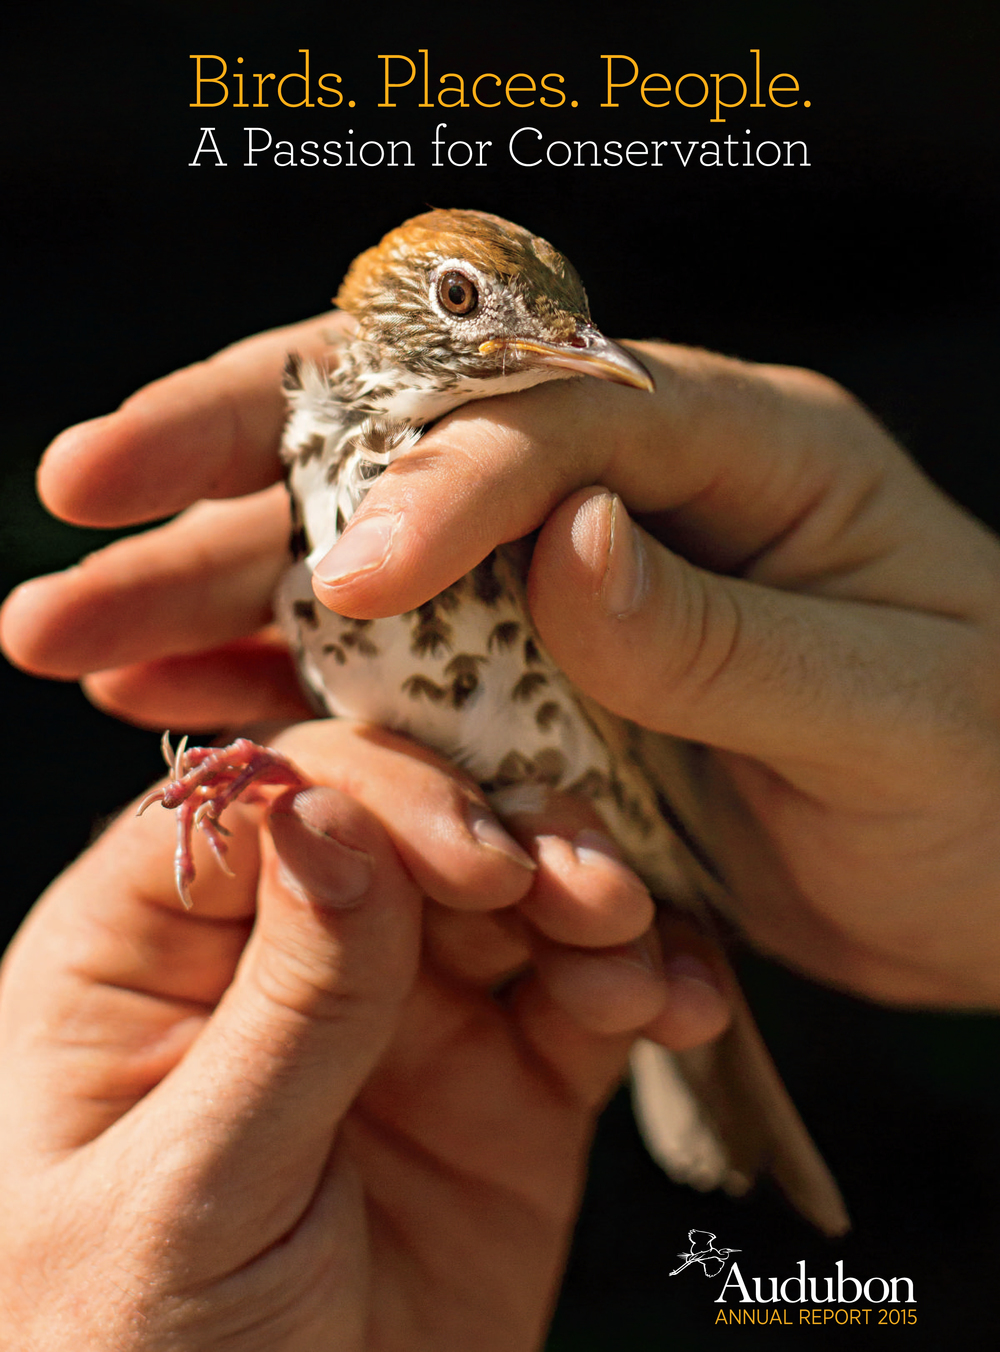 Wood Thrush migration in NC